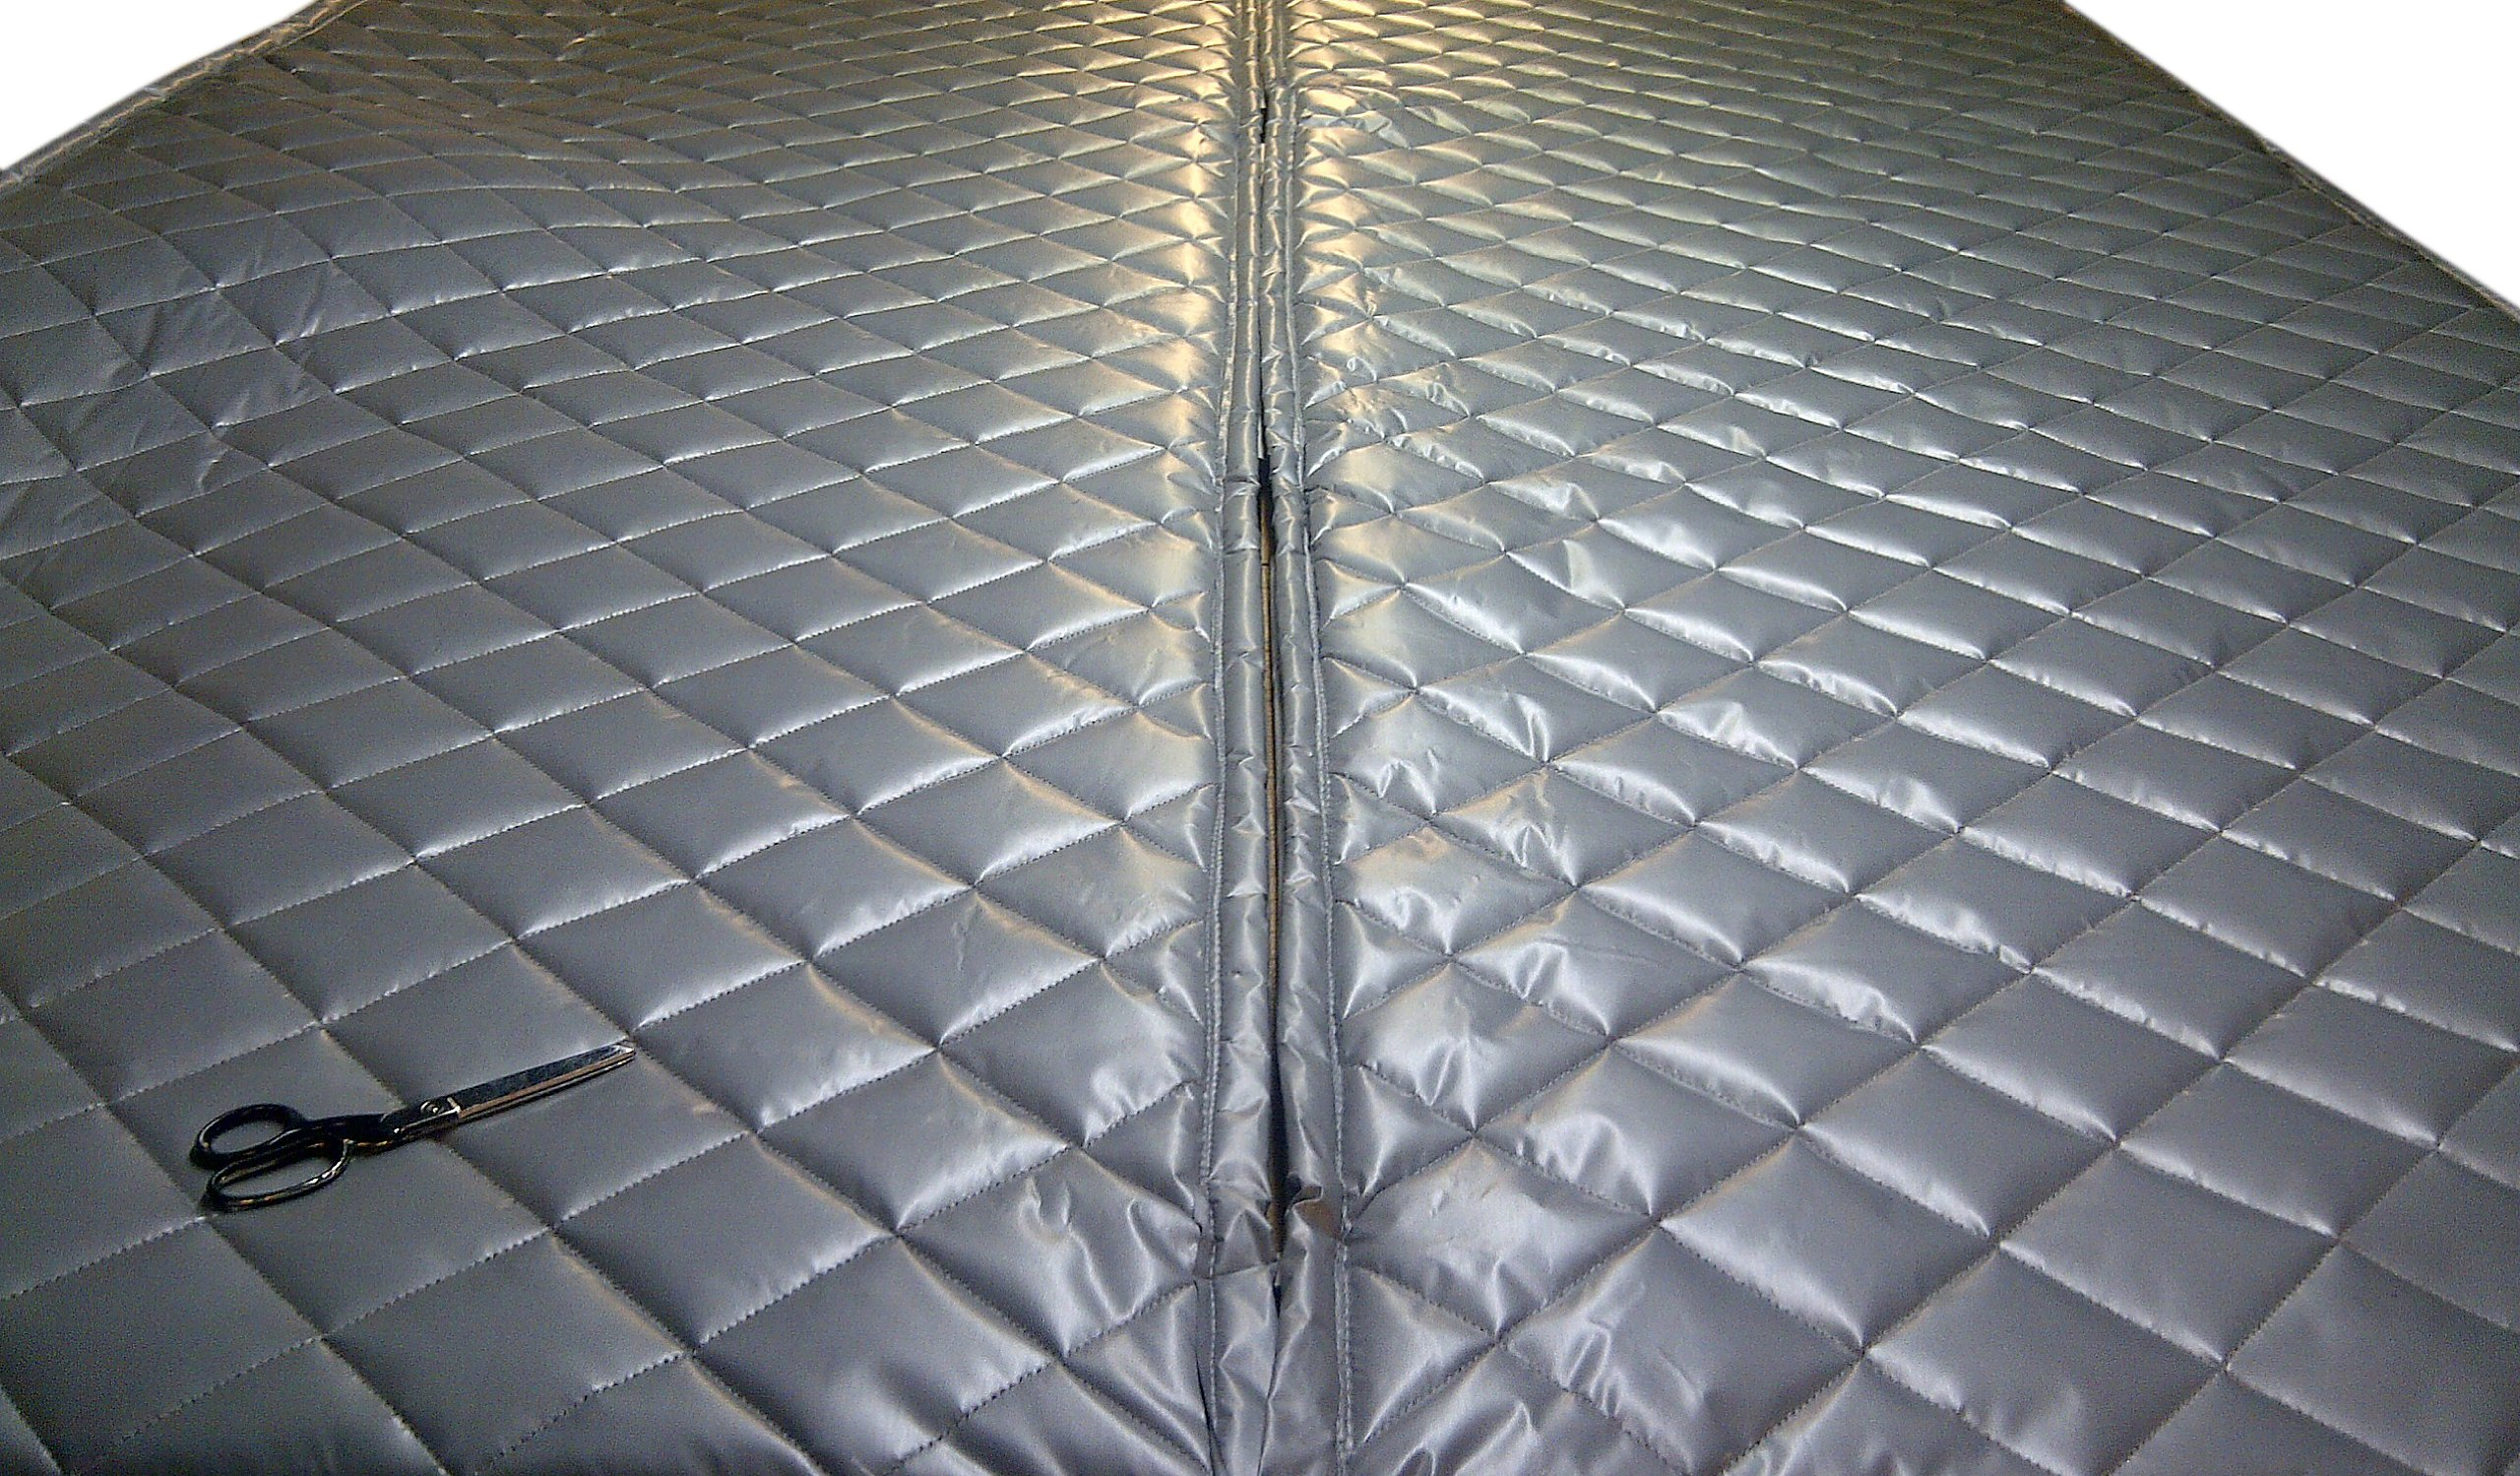 Singer Safety Double Faced Quilted Fiberglass Panel, 4' Width x 8' Height x 2'' Thick